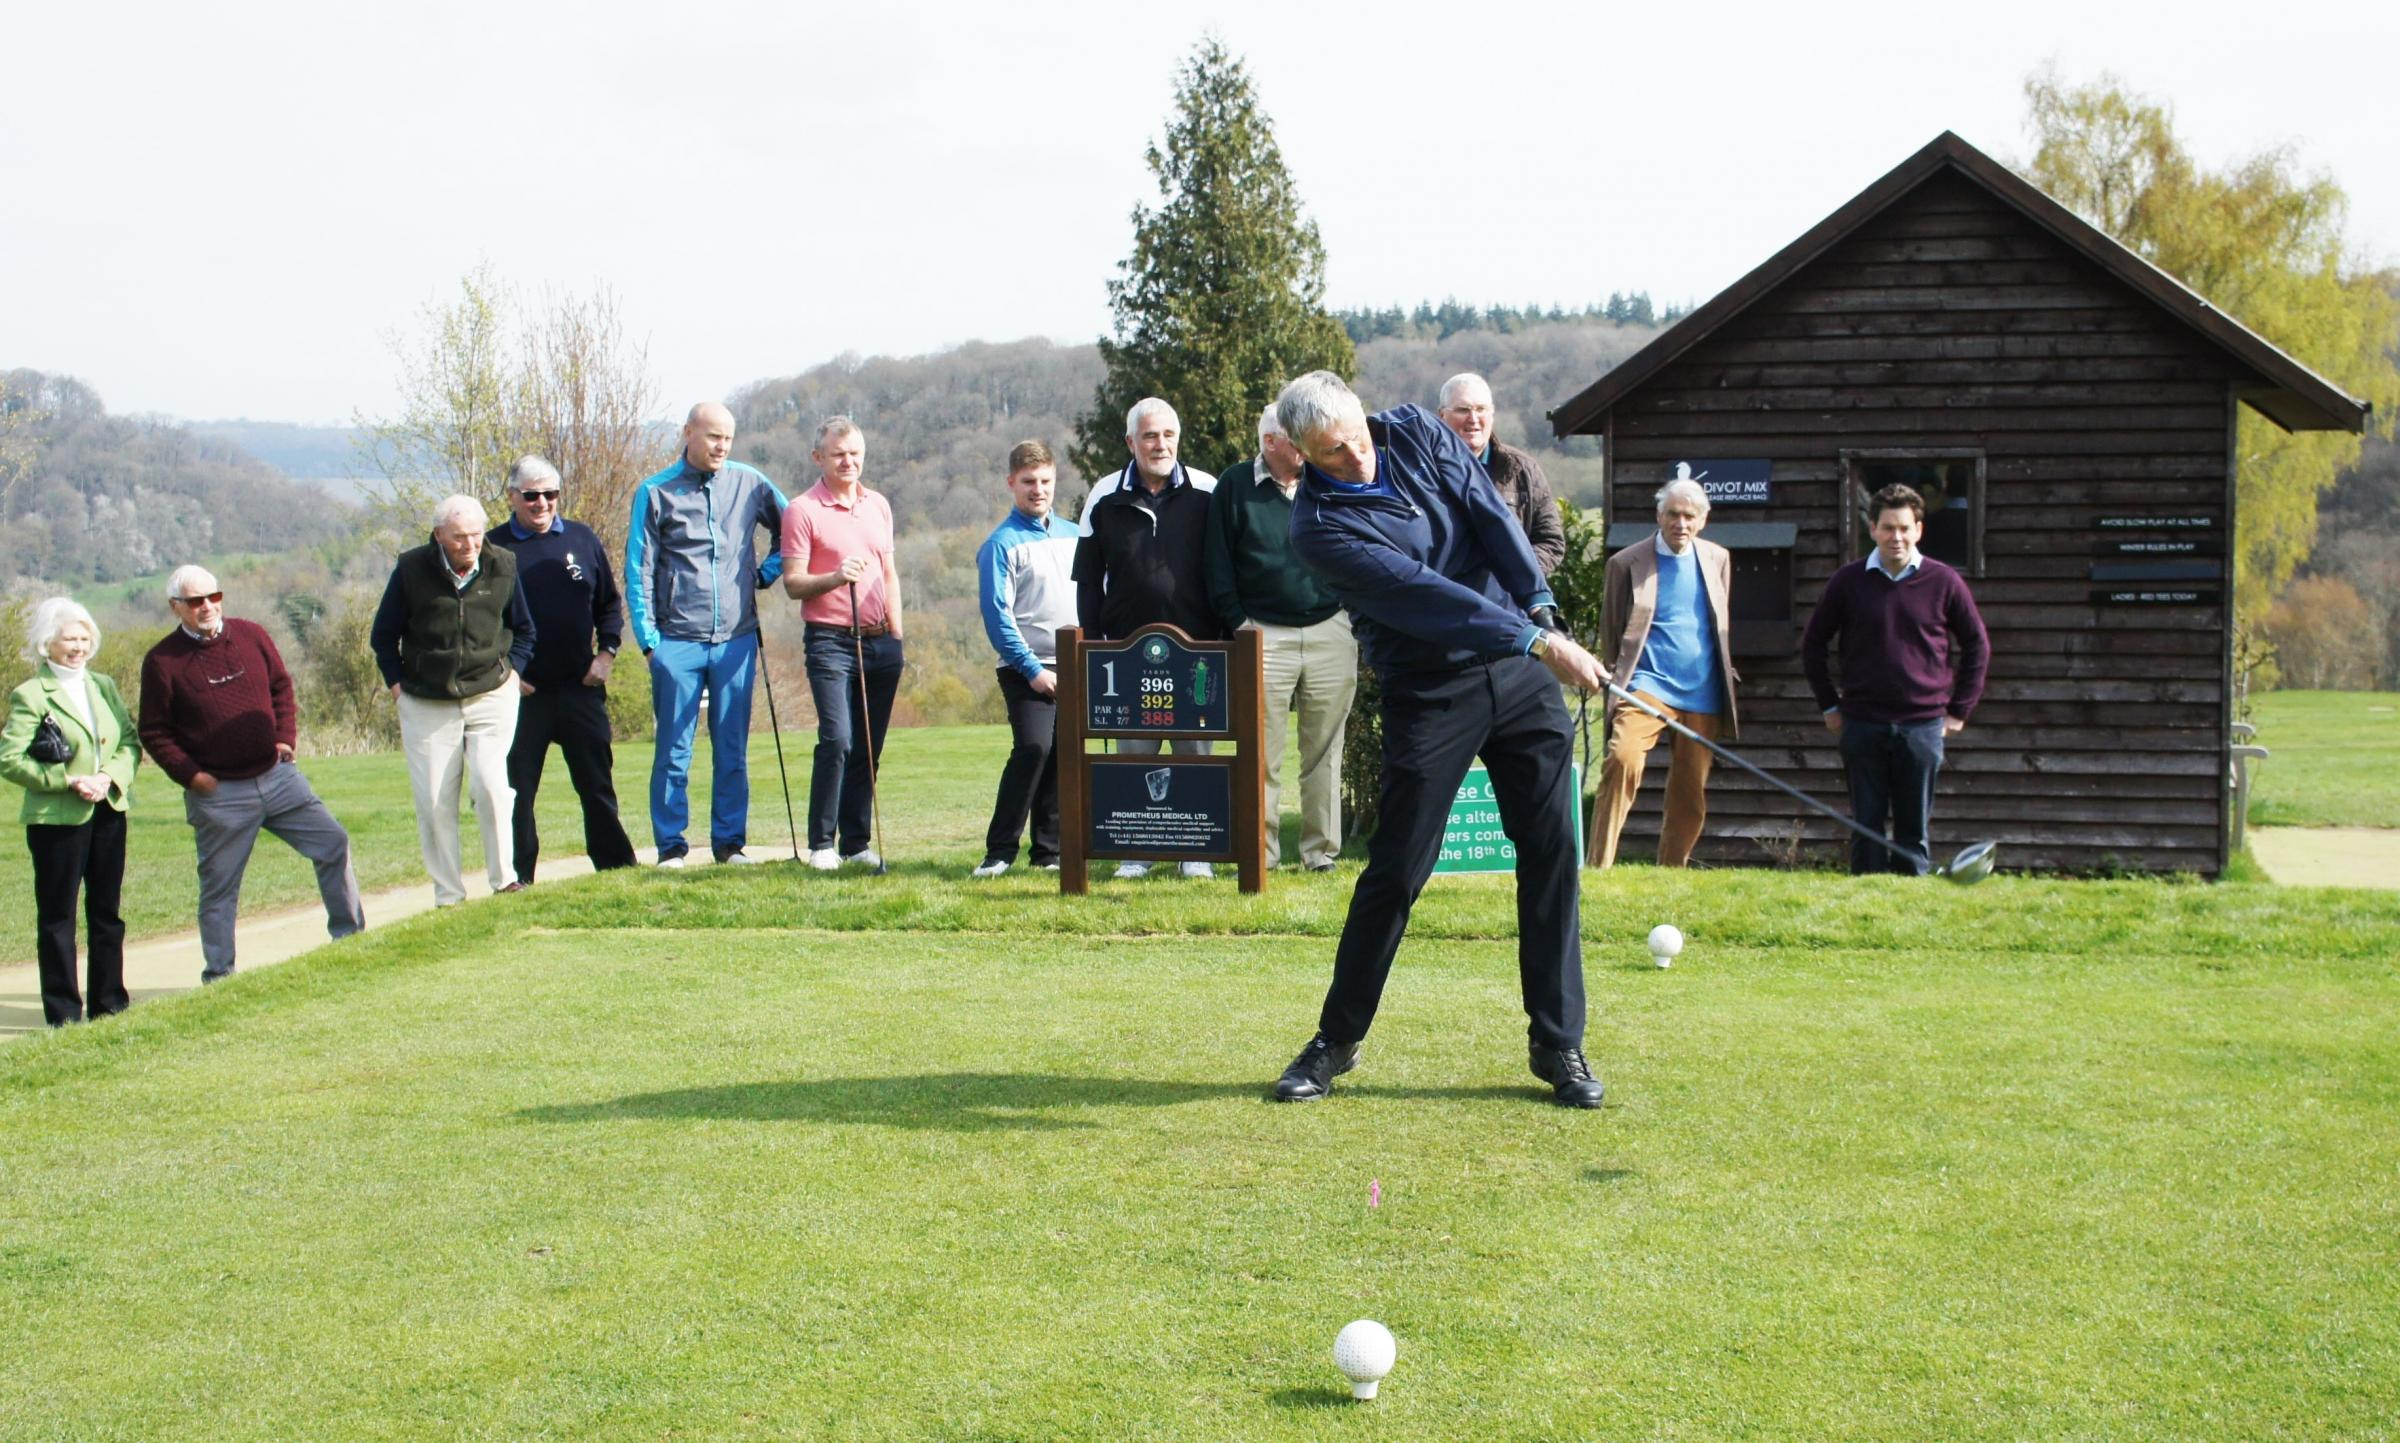 David Harrison drives in as the Herefordshire Golf Club captain